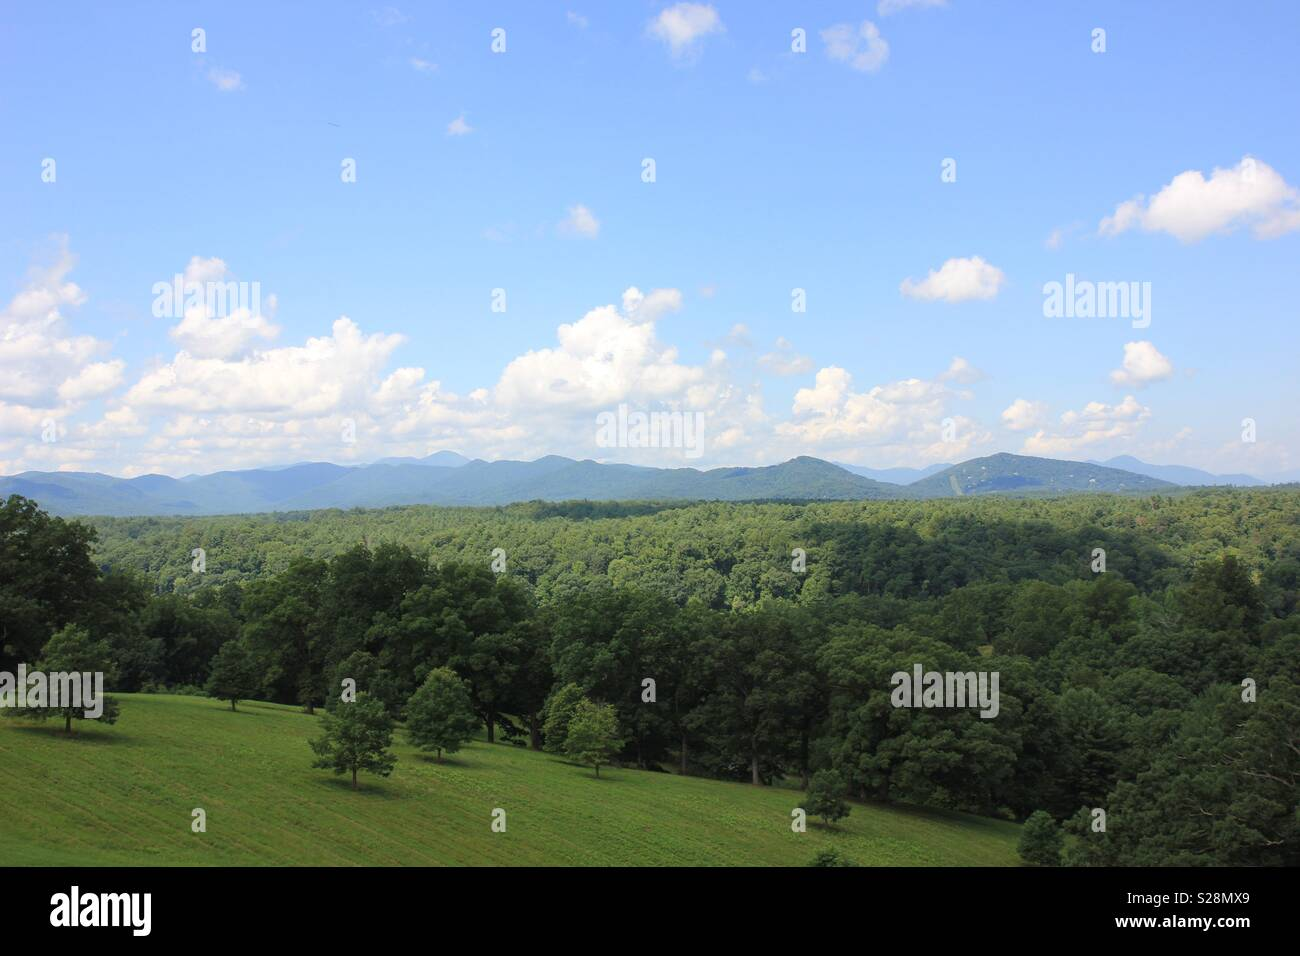 Mountains in Asheville, NC - Stock Image